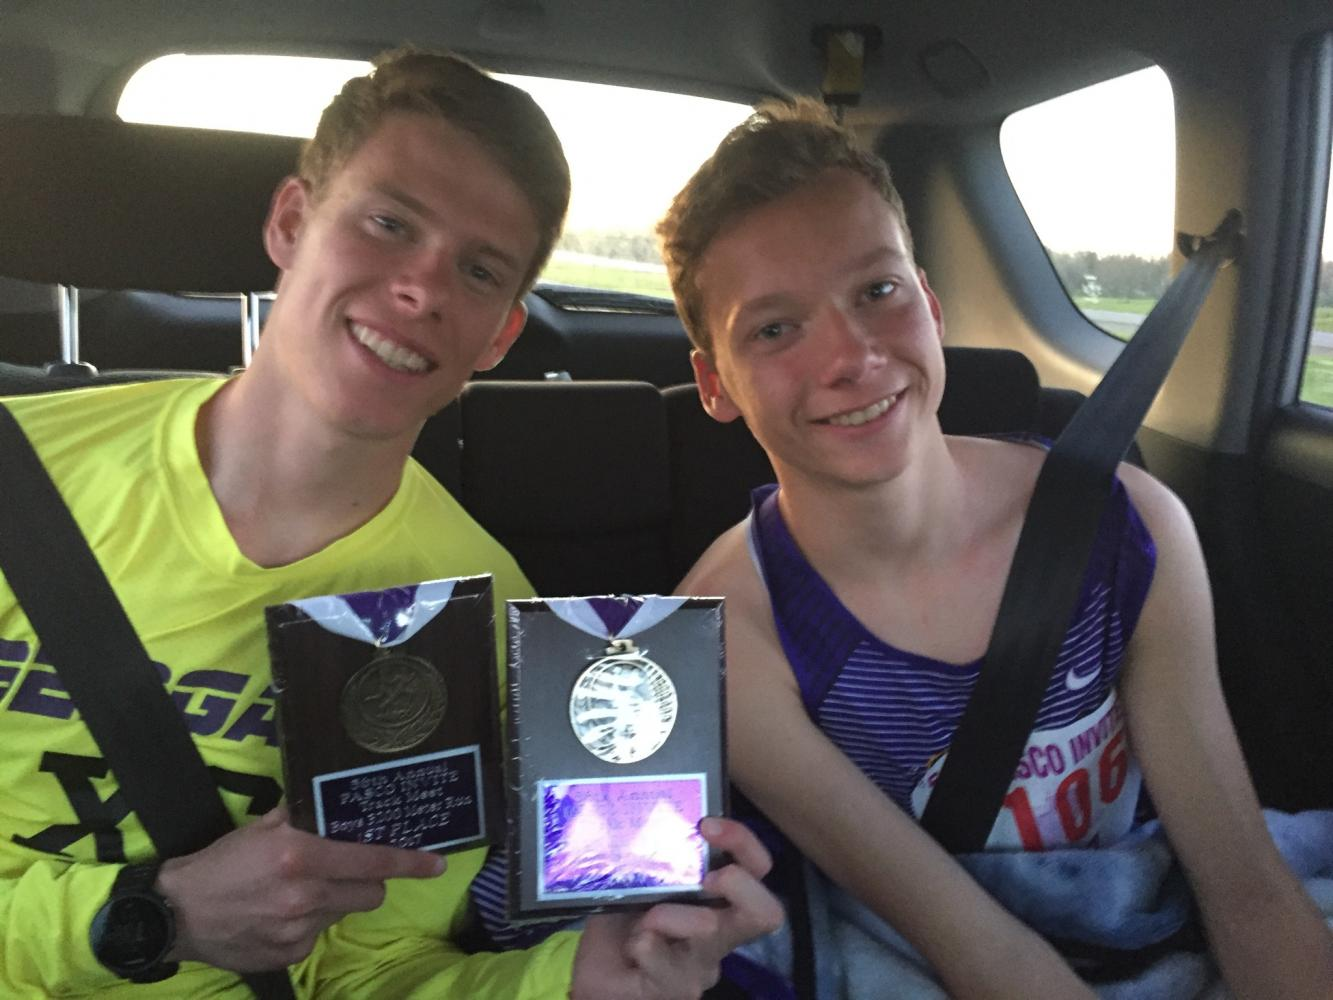 Senior Austin Byrer and freshman Caden Byrer in the aftermath of state track May 20. Austin Byrer won second in the 1,600-meter event and first place honors in the 3,200-meter event.